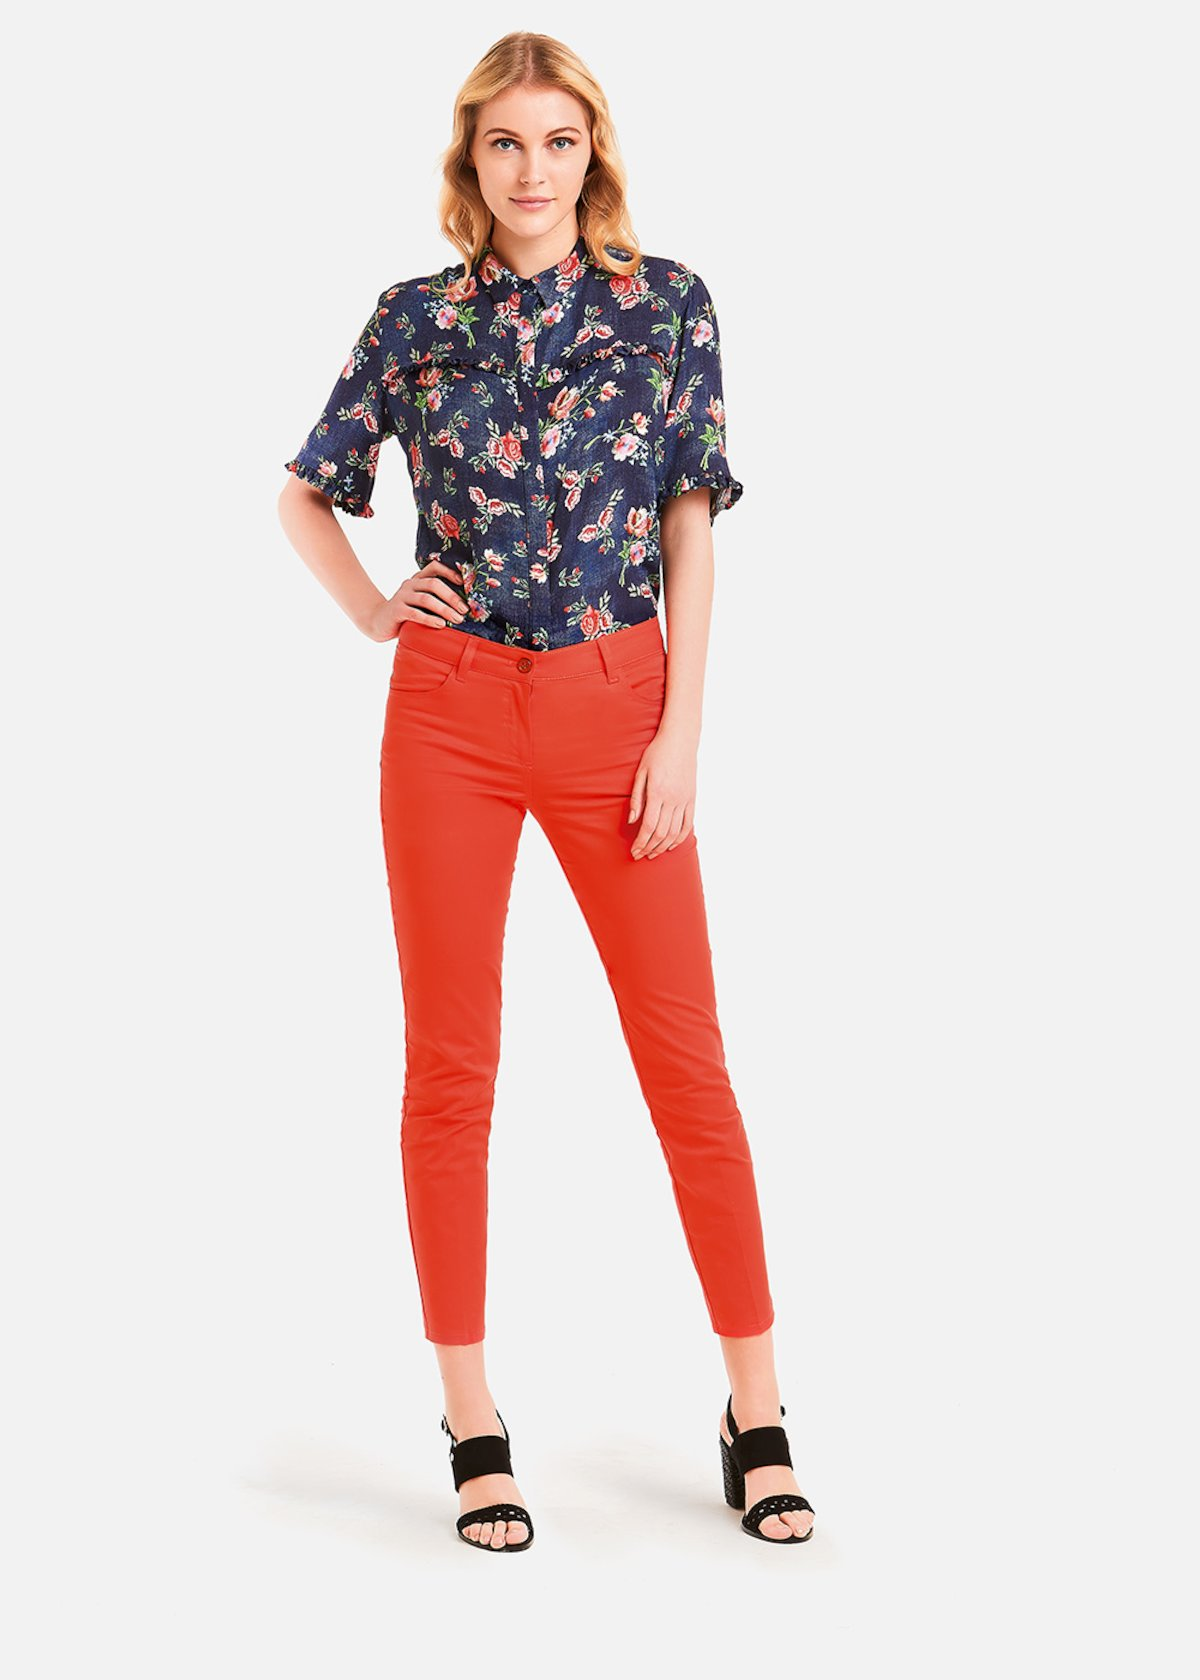 Cindy shirt with ruffles - Denim / Poppy Fantasia